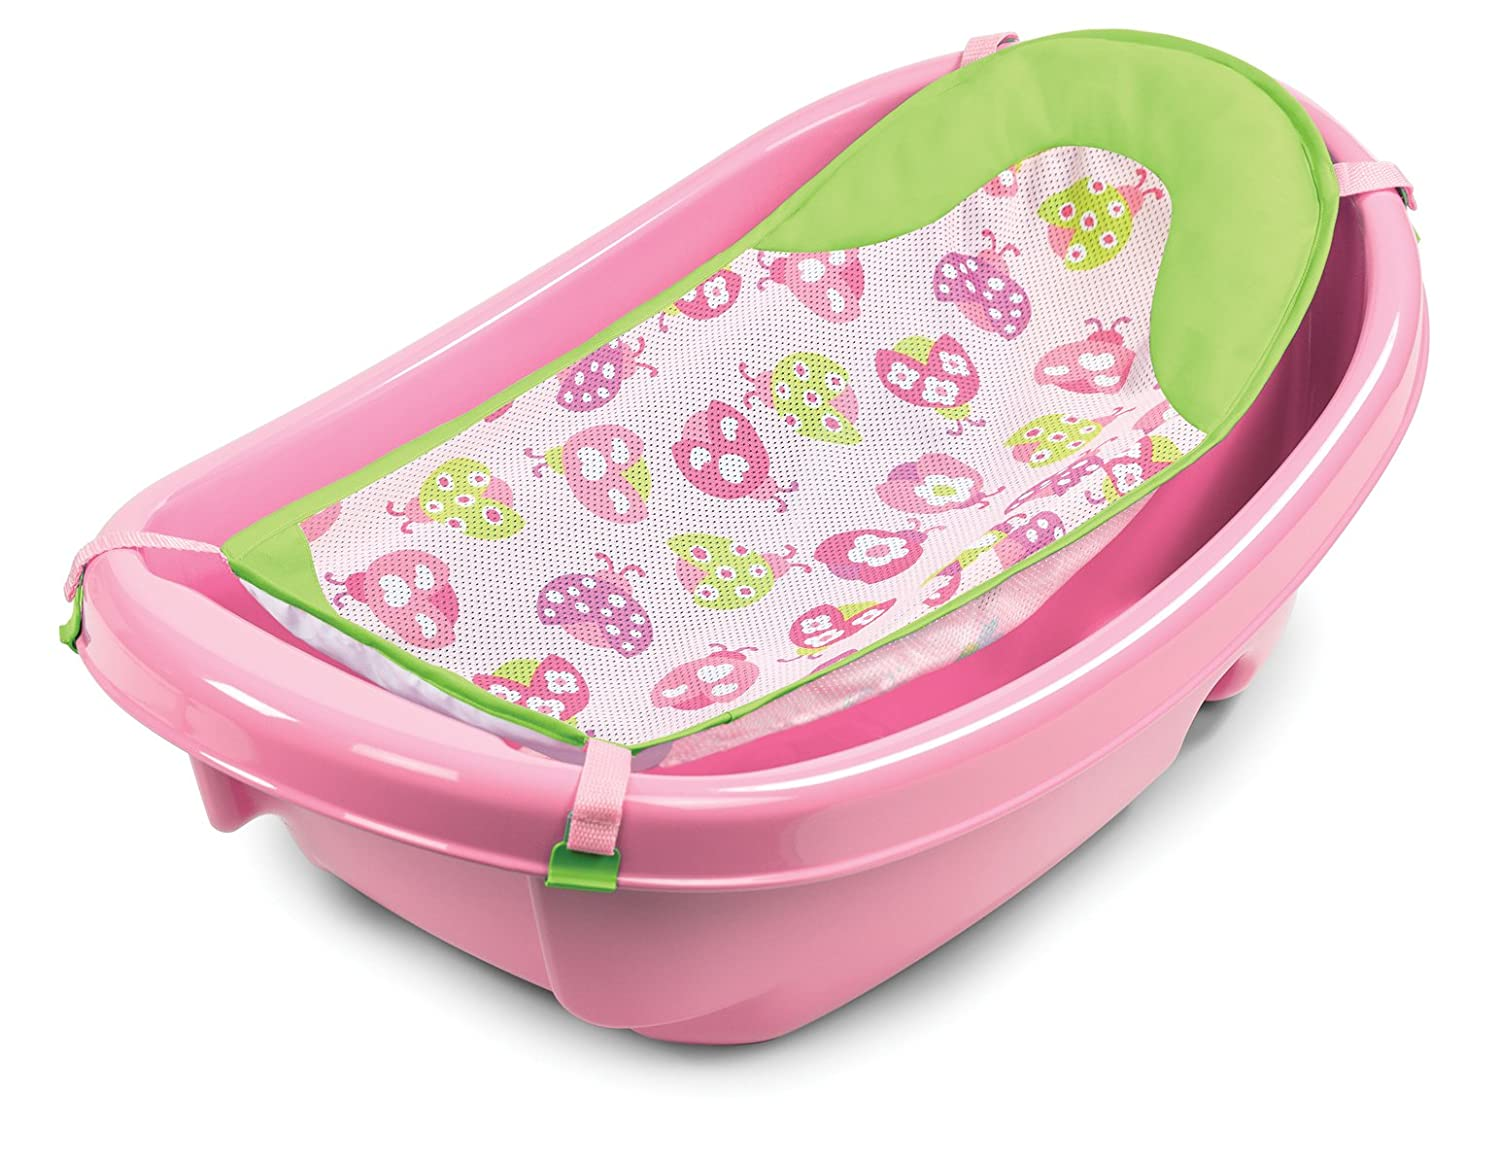 amazon     summer infant 3 stage newborn to toddler baby bath love ladybug  discontinued by manufacturer    baby bathing seats and tubs   baby amazon     summer infant 3 stage newborn to toddler baby bath      rh   amazon